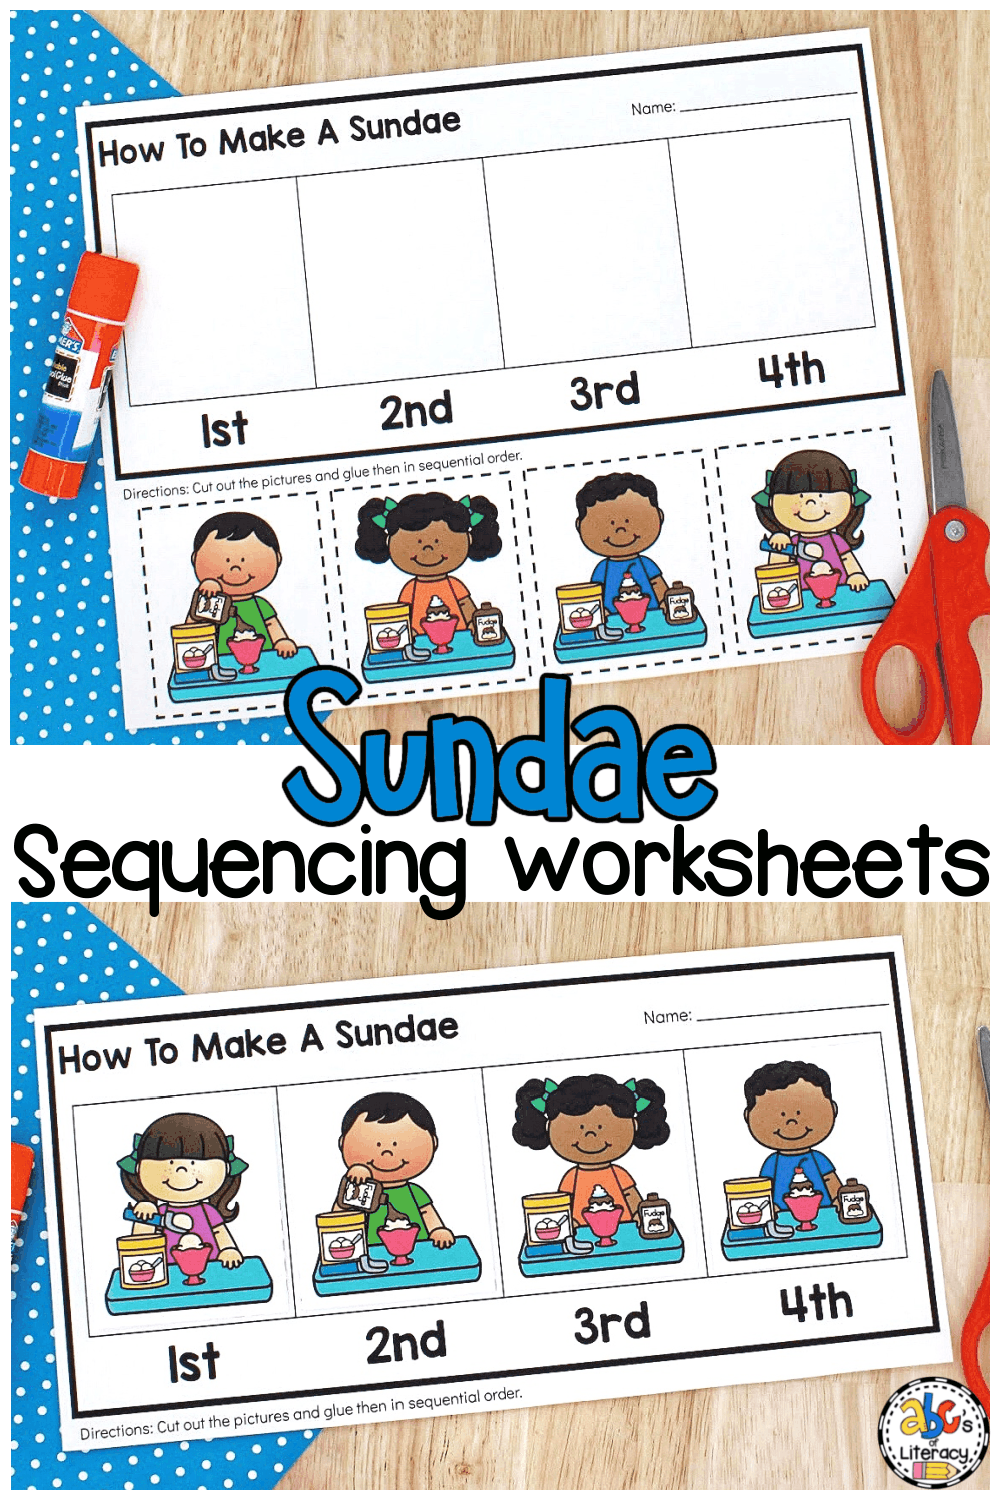 How to make a sundae activity for kids